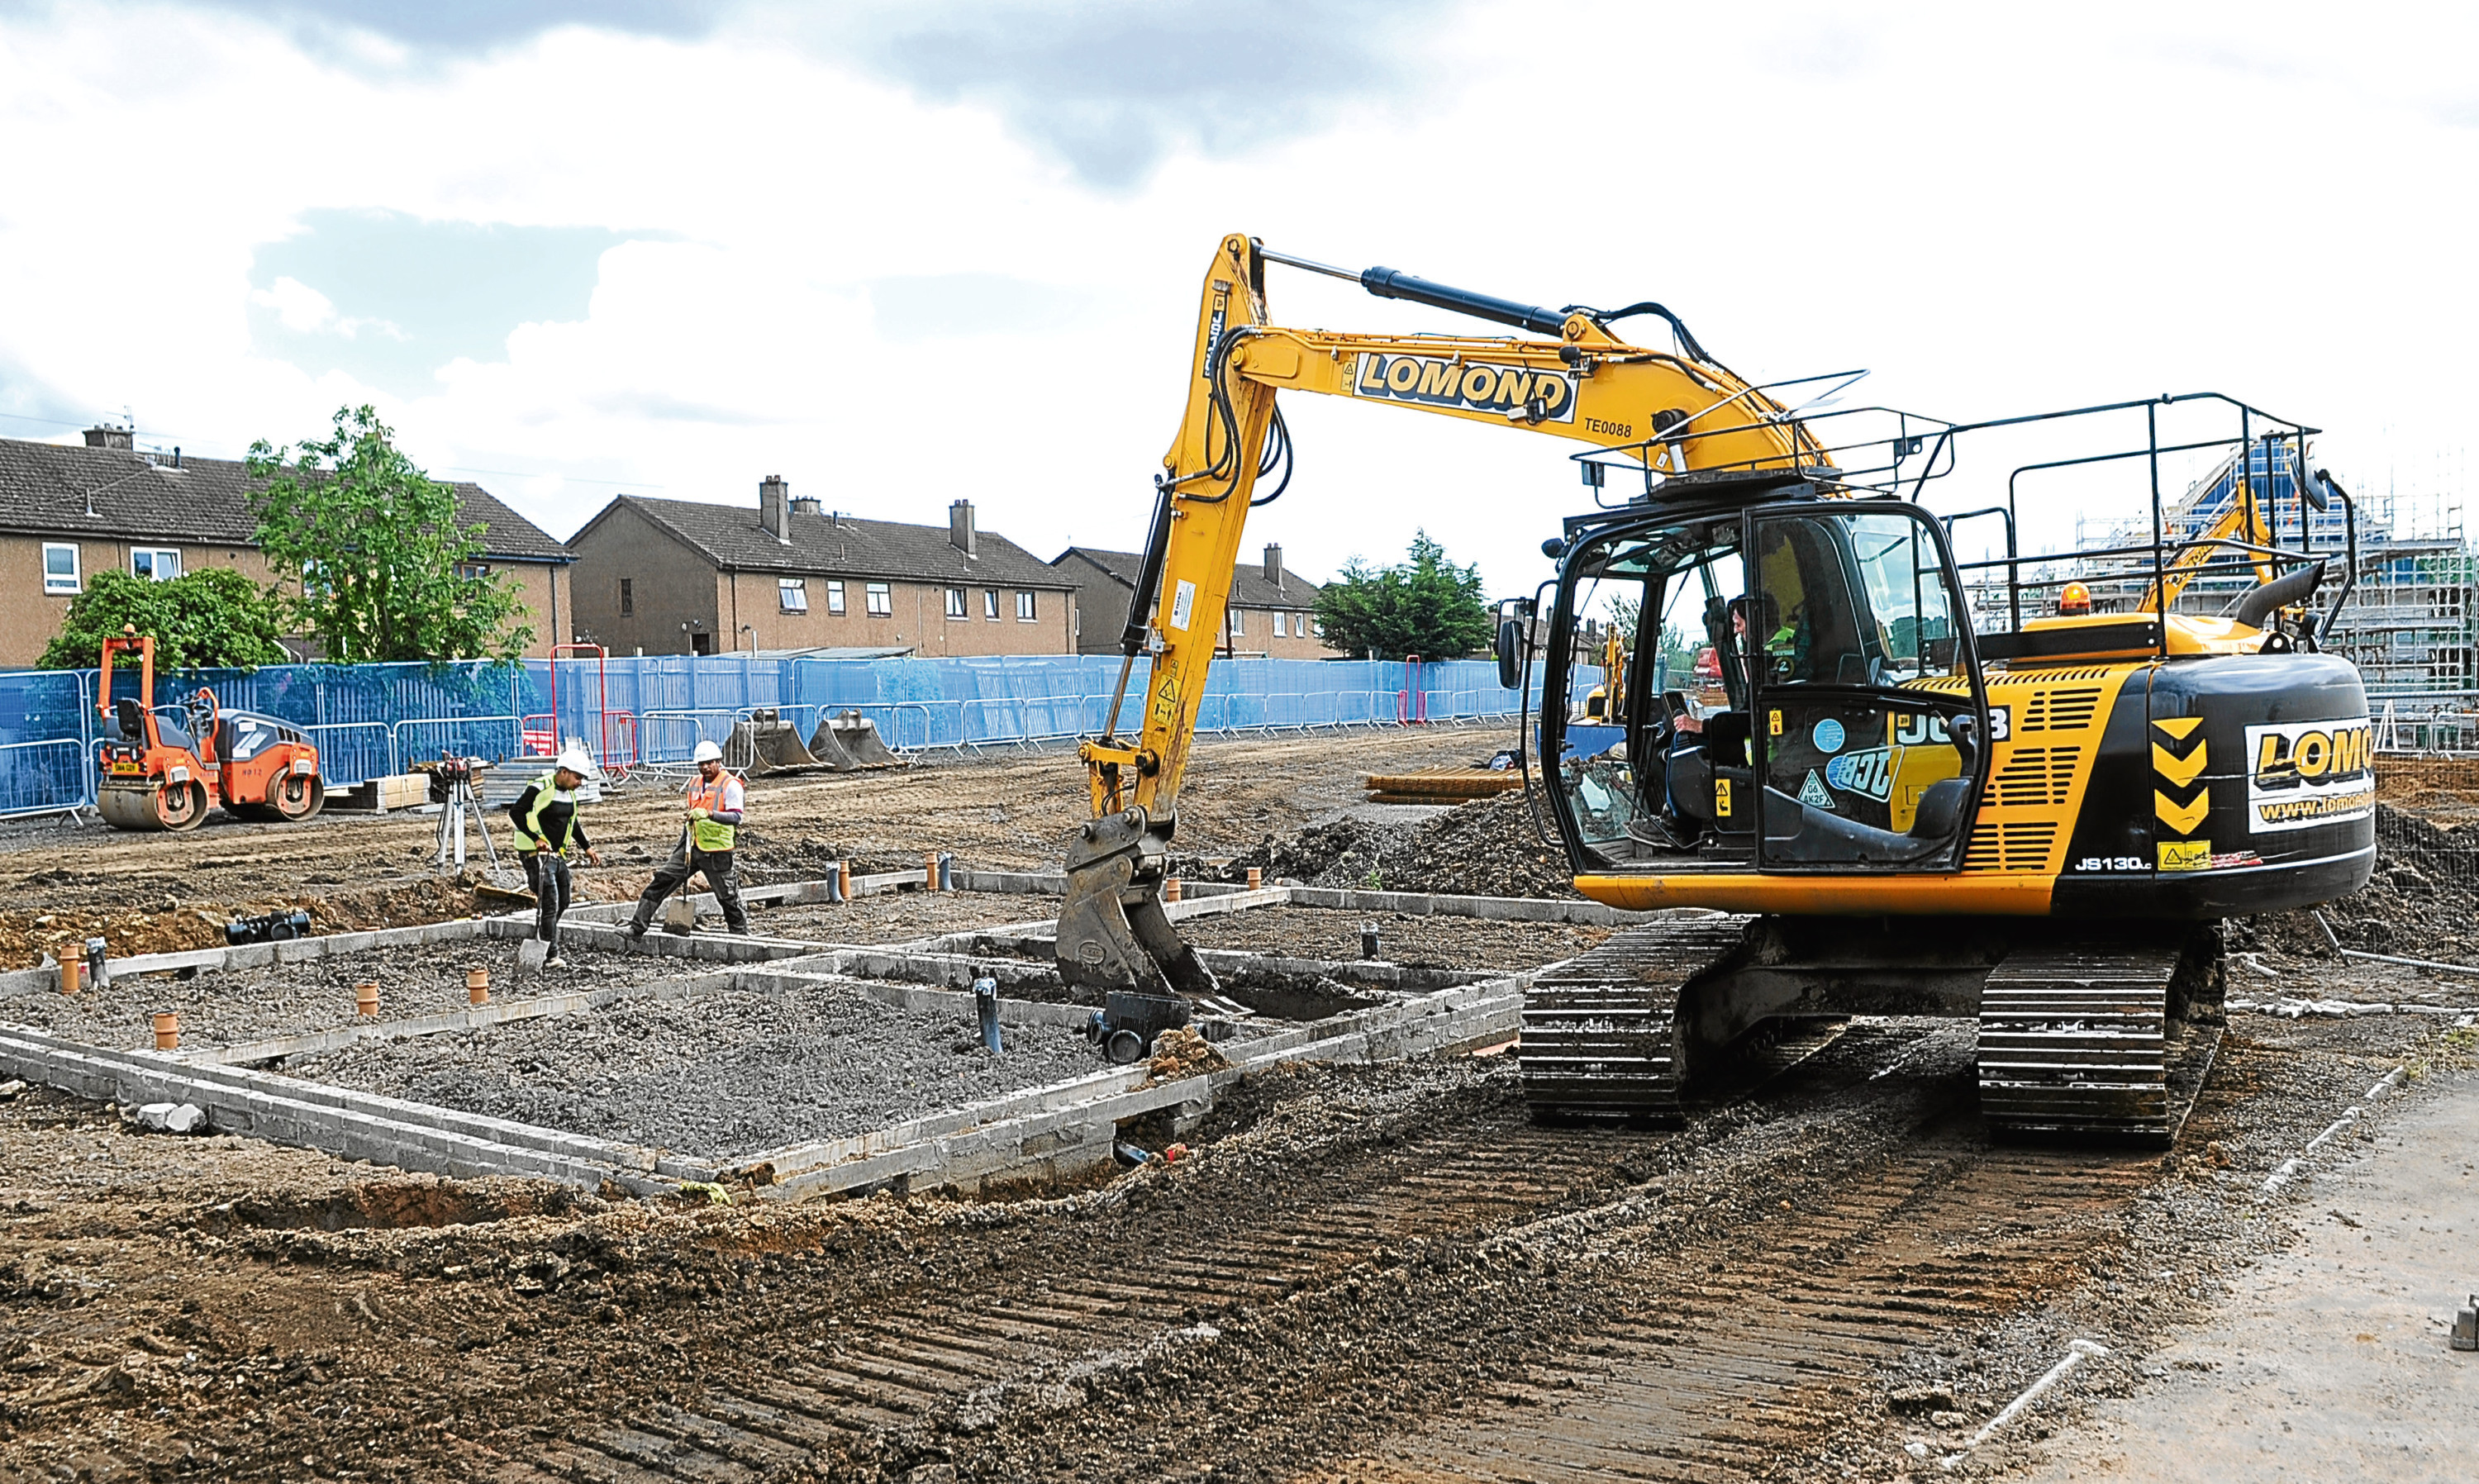 Construction work creating new housing at Finavon Terrace in Dundee.